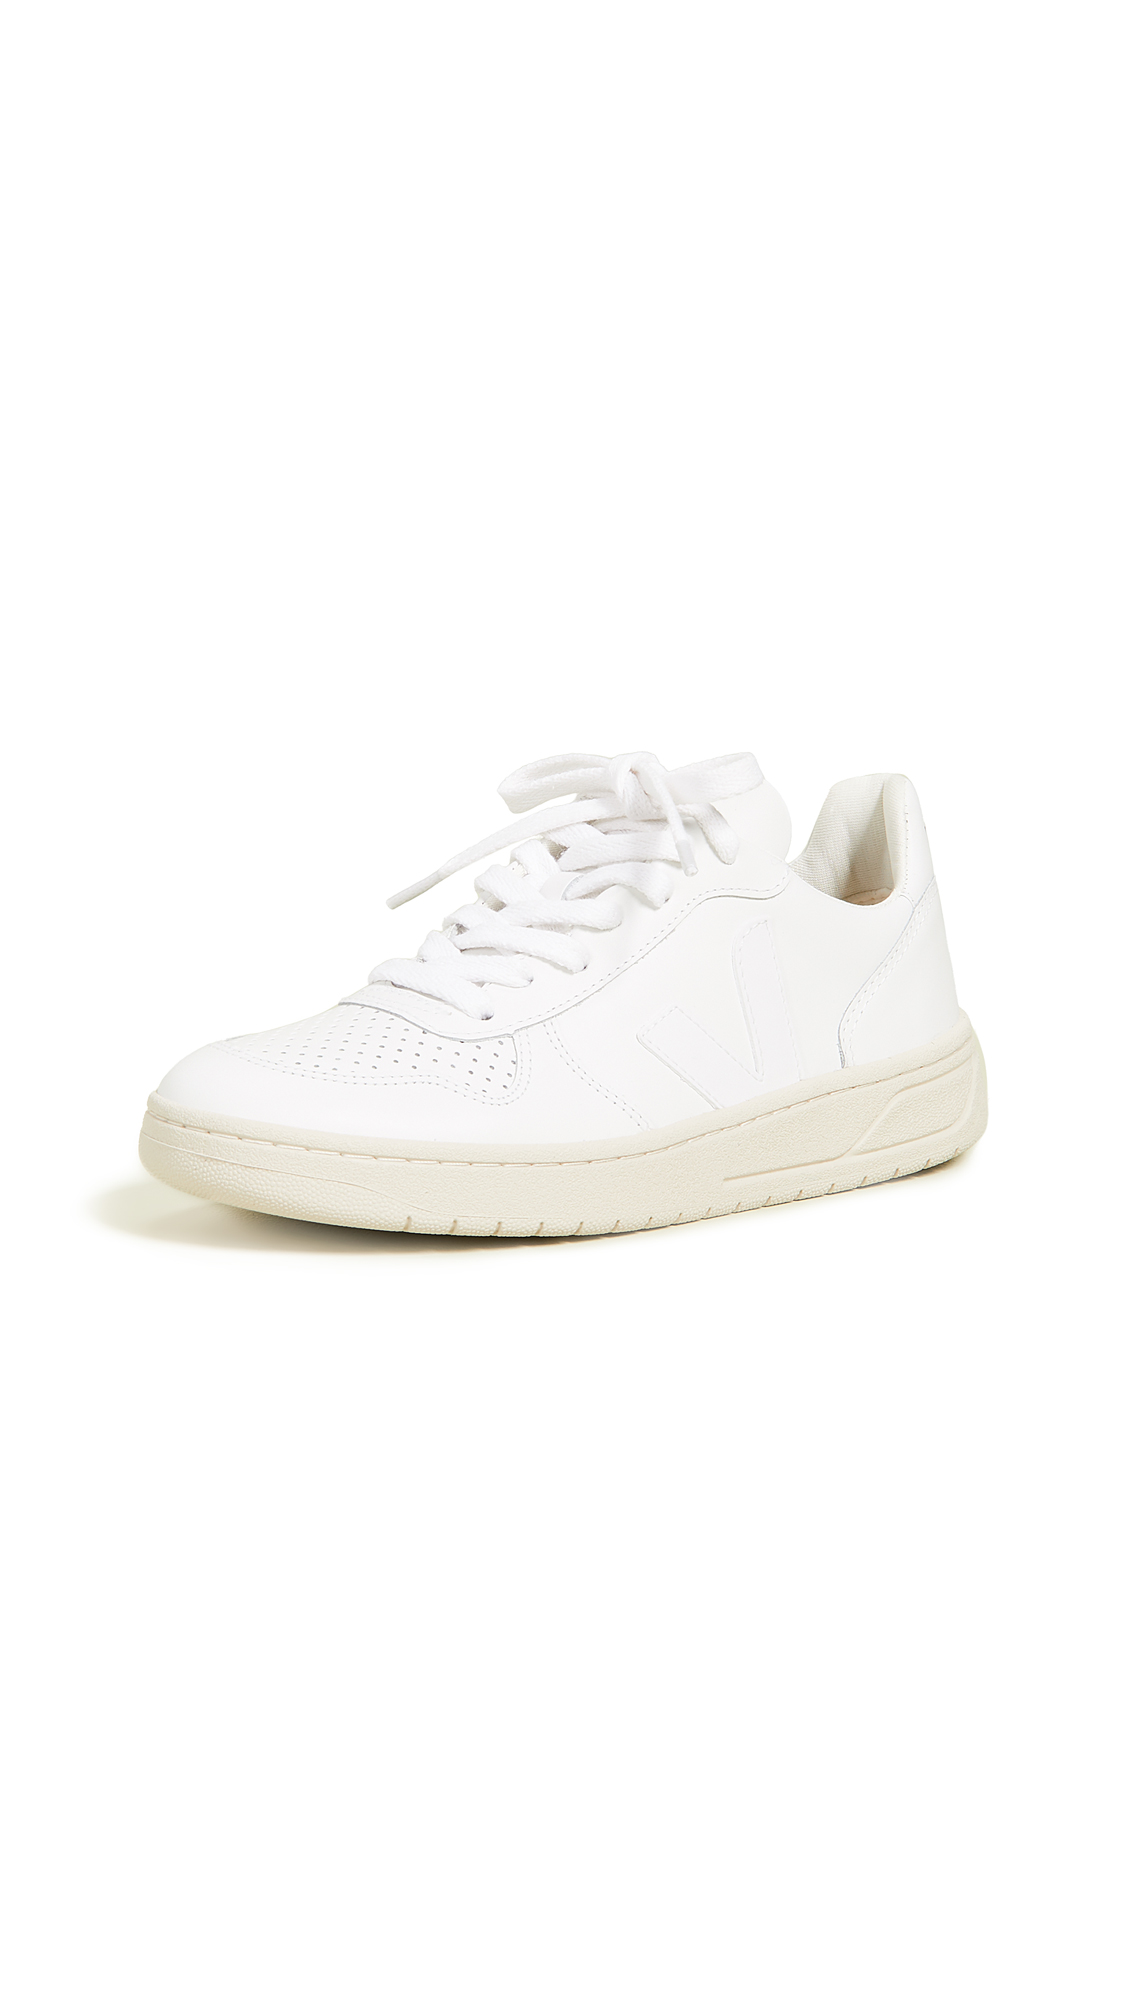 Veja V-10 Lace Up Sneakers - Extra White